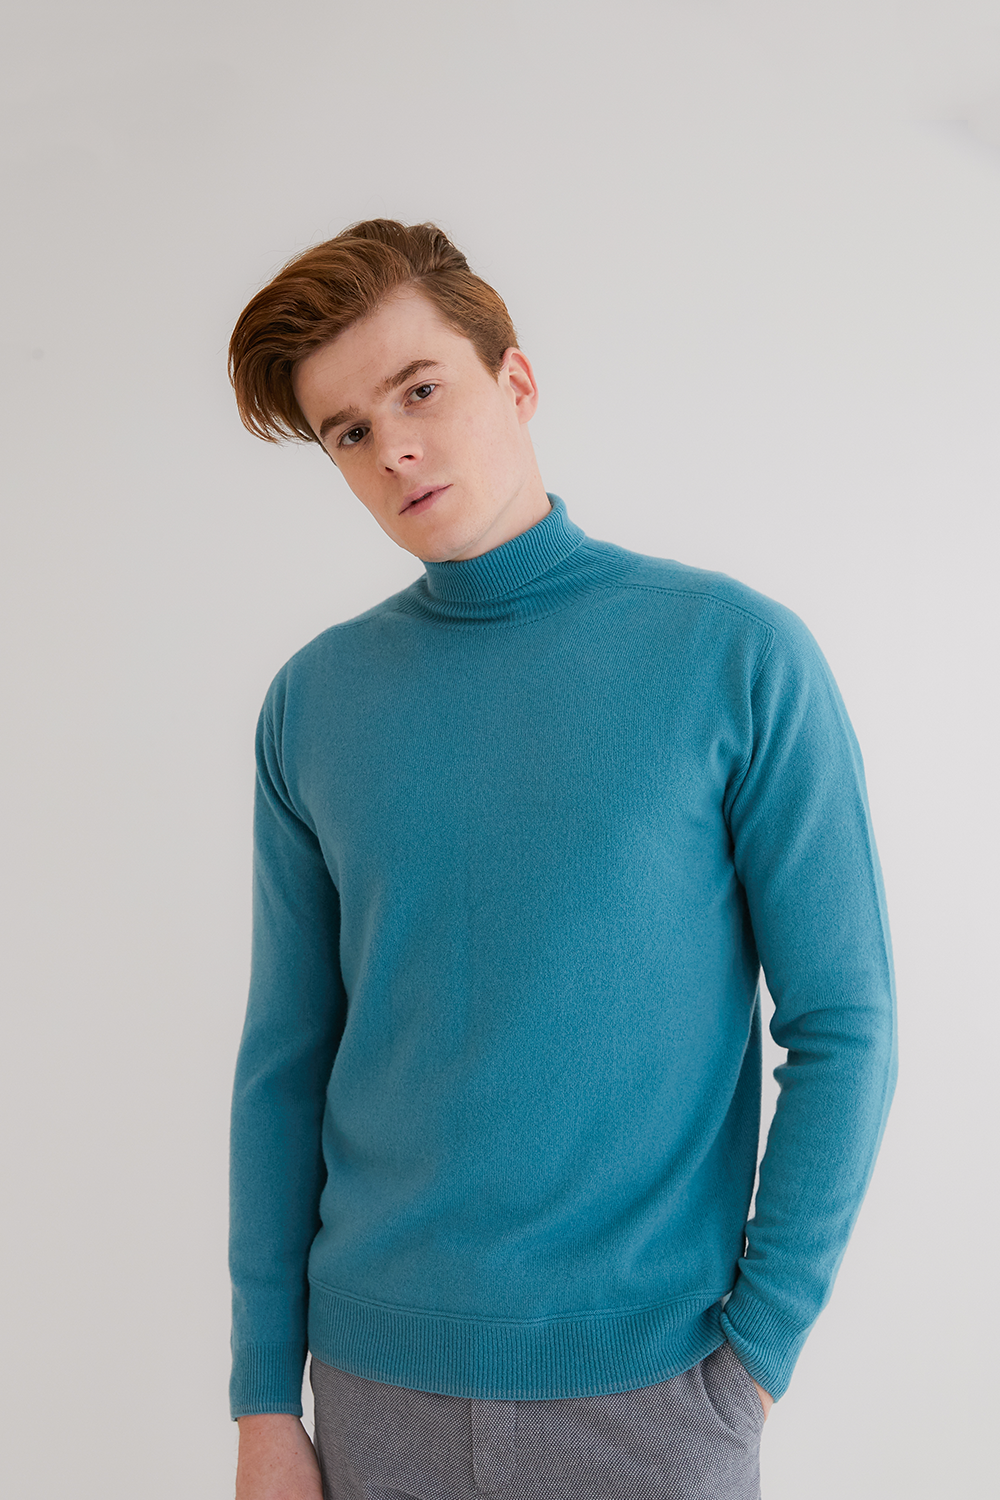 Pure cashmere100 turtleneck sweater by whole-garment knitting - Turquoise blue (인기상품/한정수량/M사이즈 품절/ L사이즈만 가능)